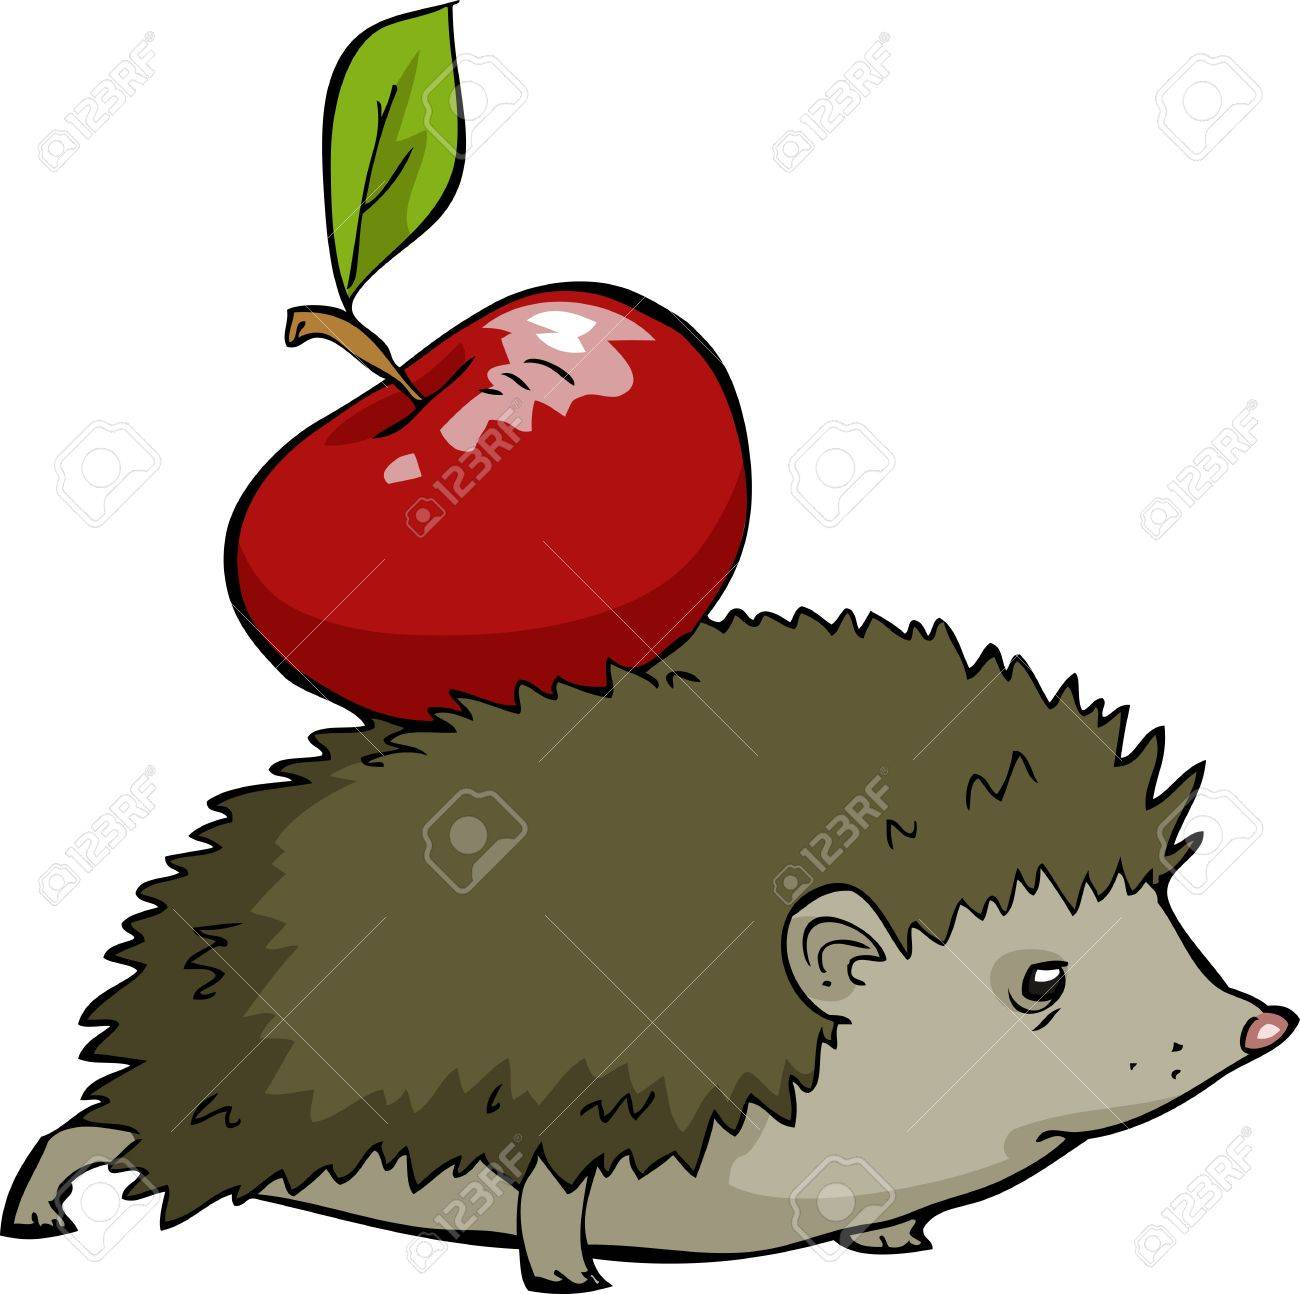 Hedgehog on a white background illustration Stock Vector - 17887331